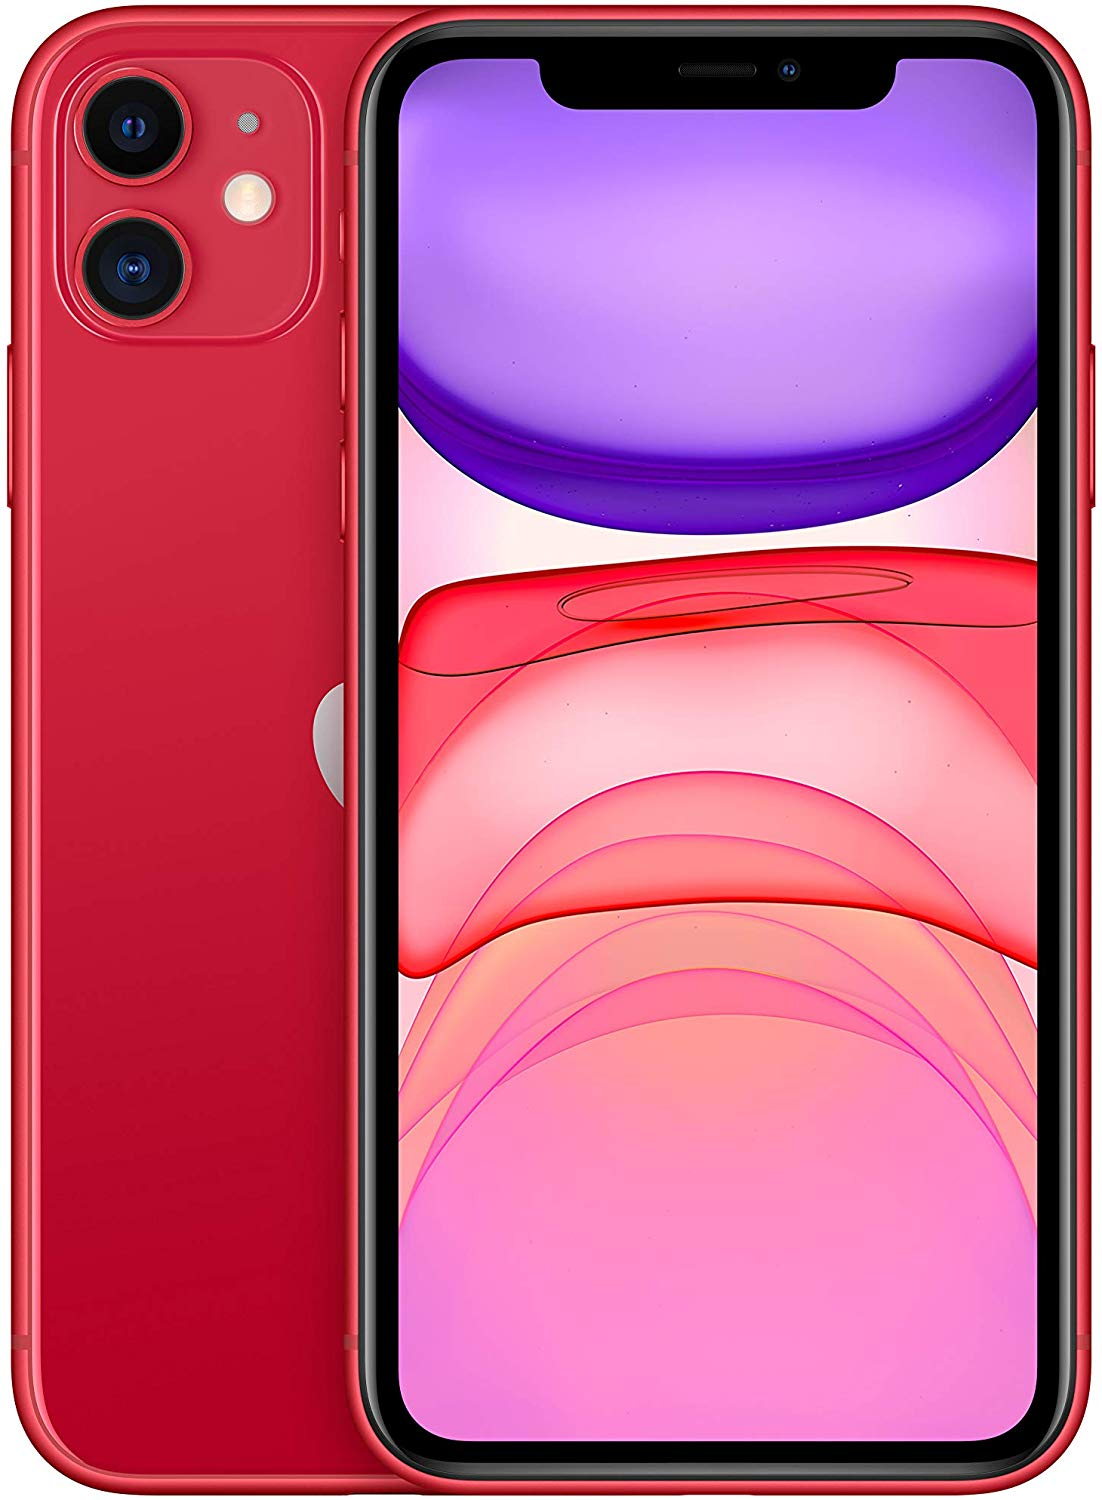 Electricals & Technology Apple iPhone 11 128GB Red